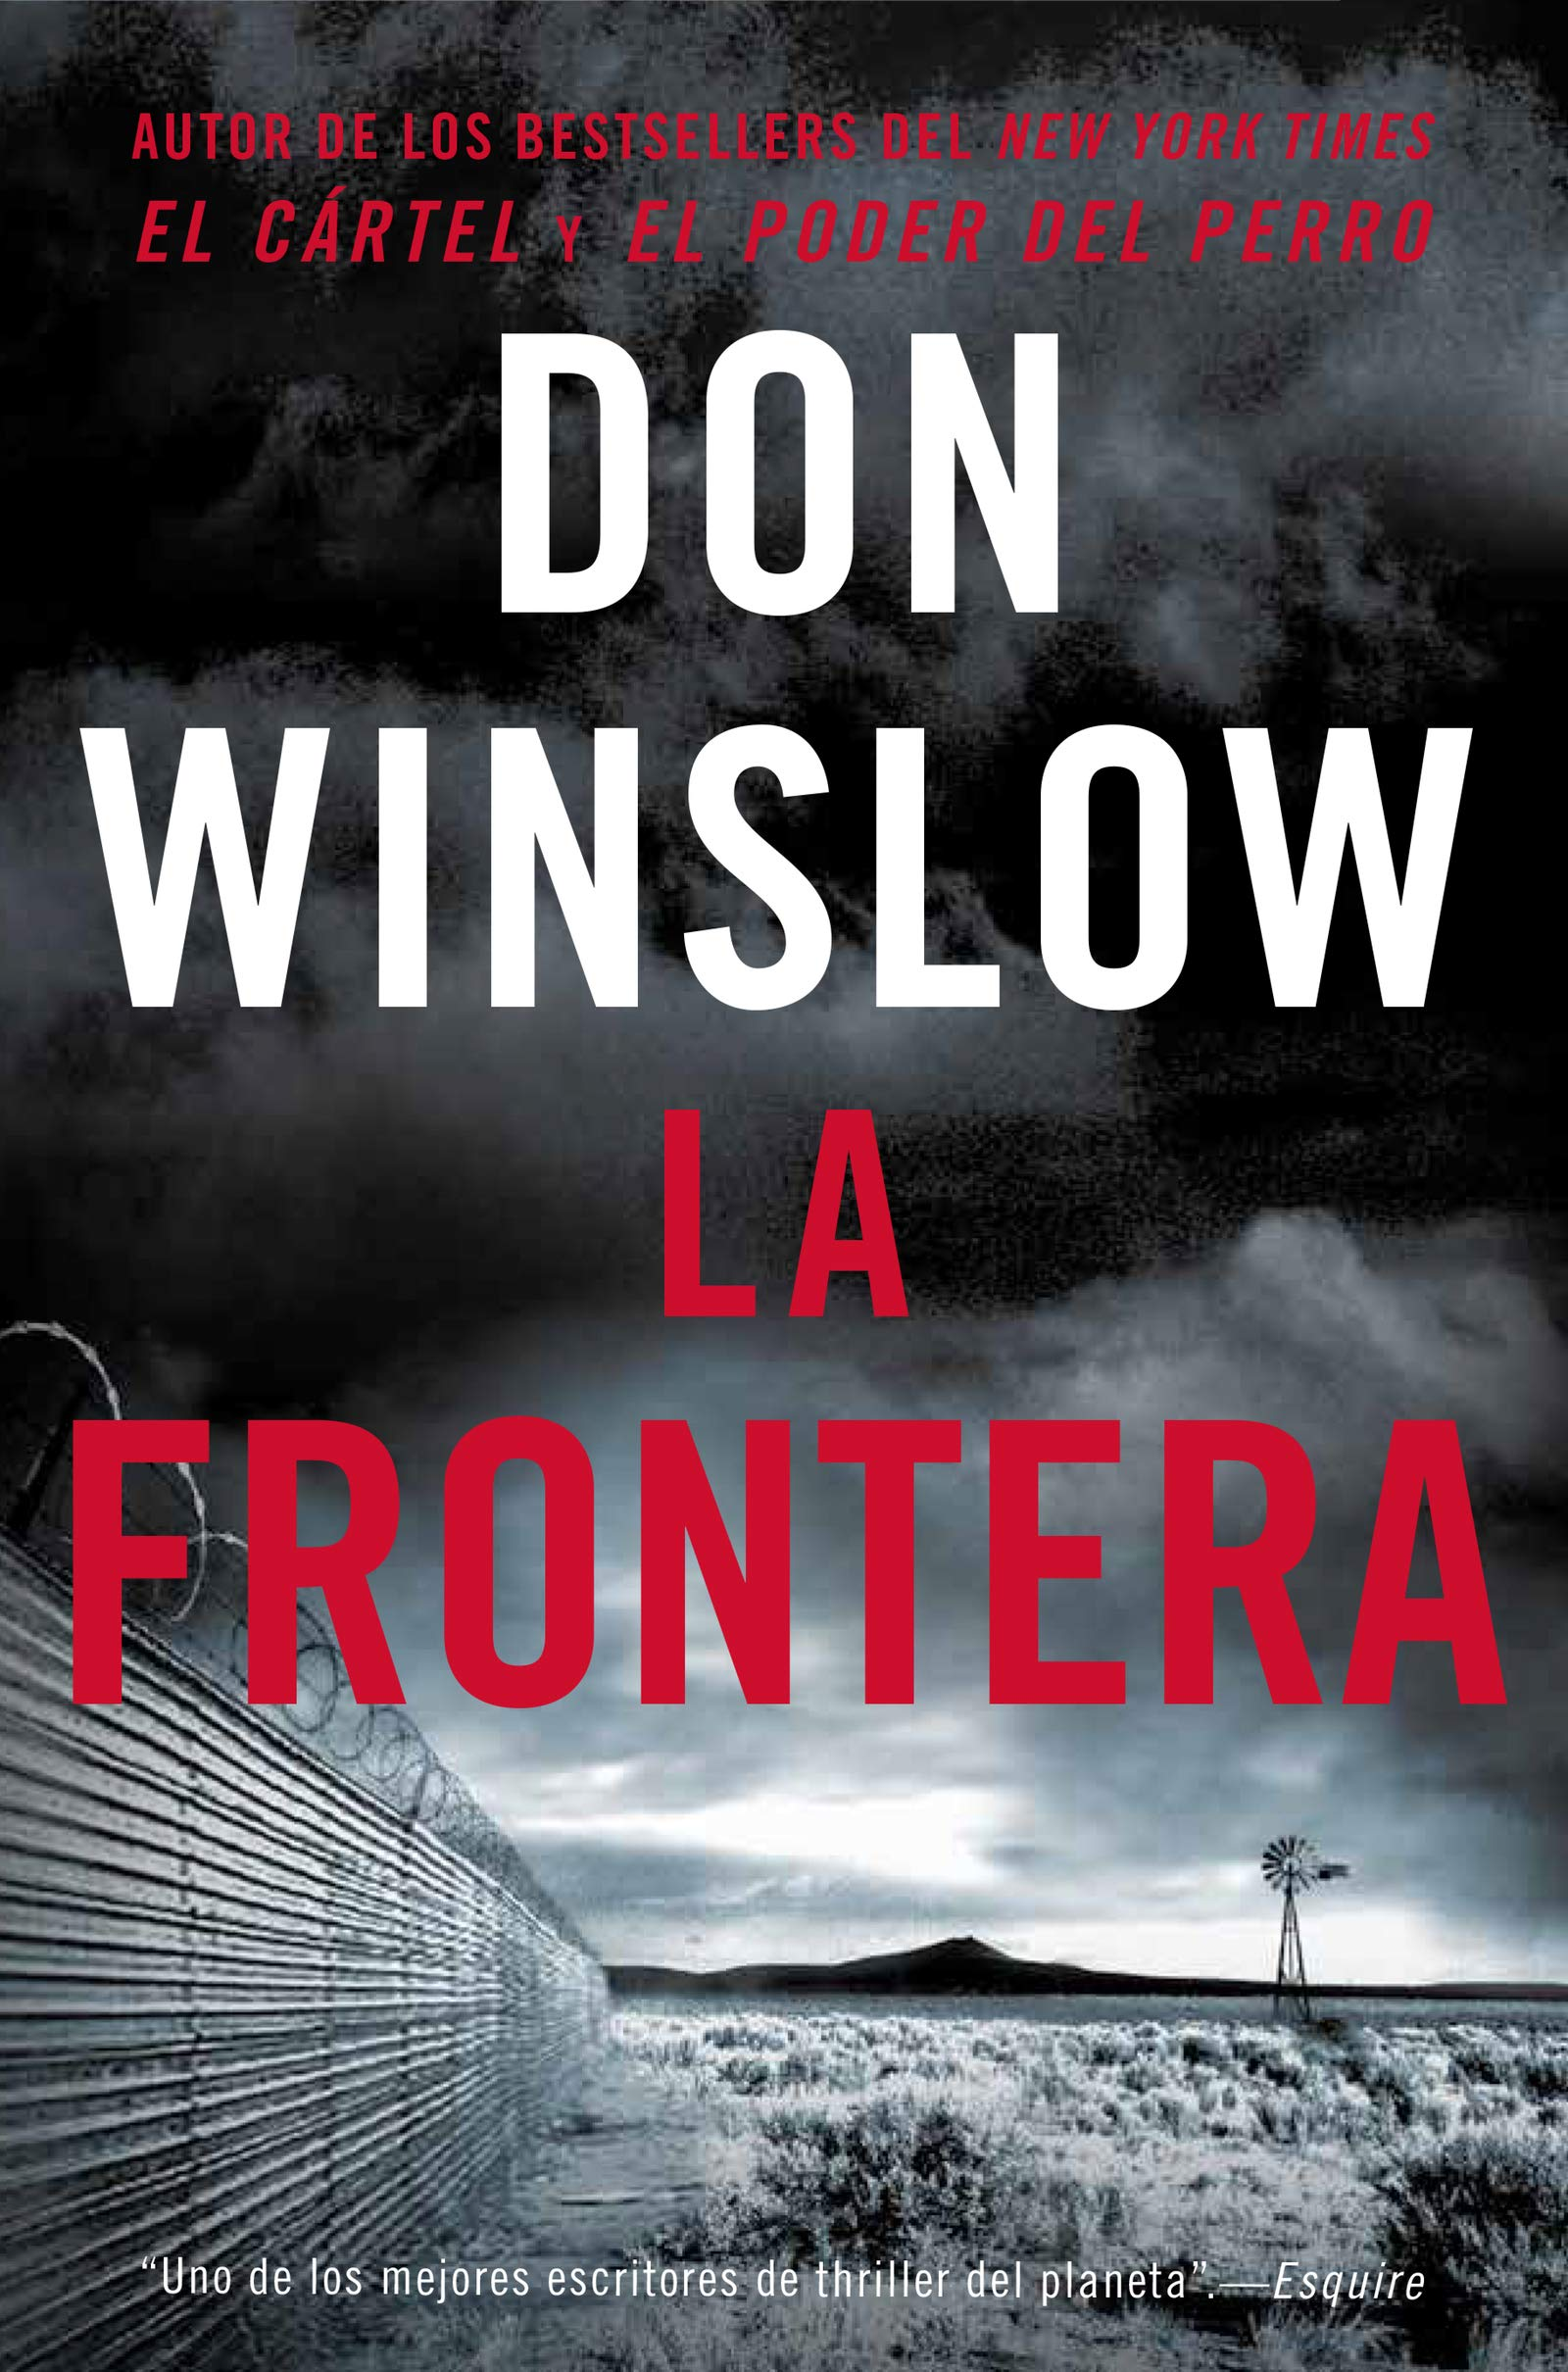 The Border / La Frontera (Spanish edition): Una novela: Don Winslow:  9780718094362: Amazon.com: Books